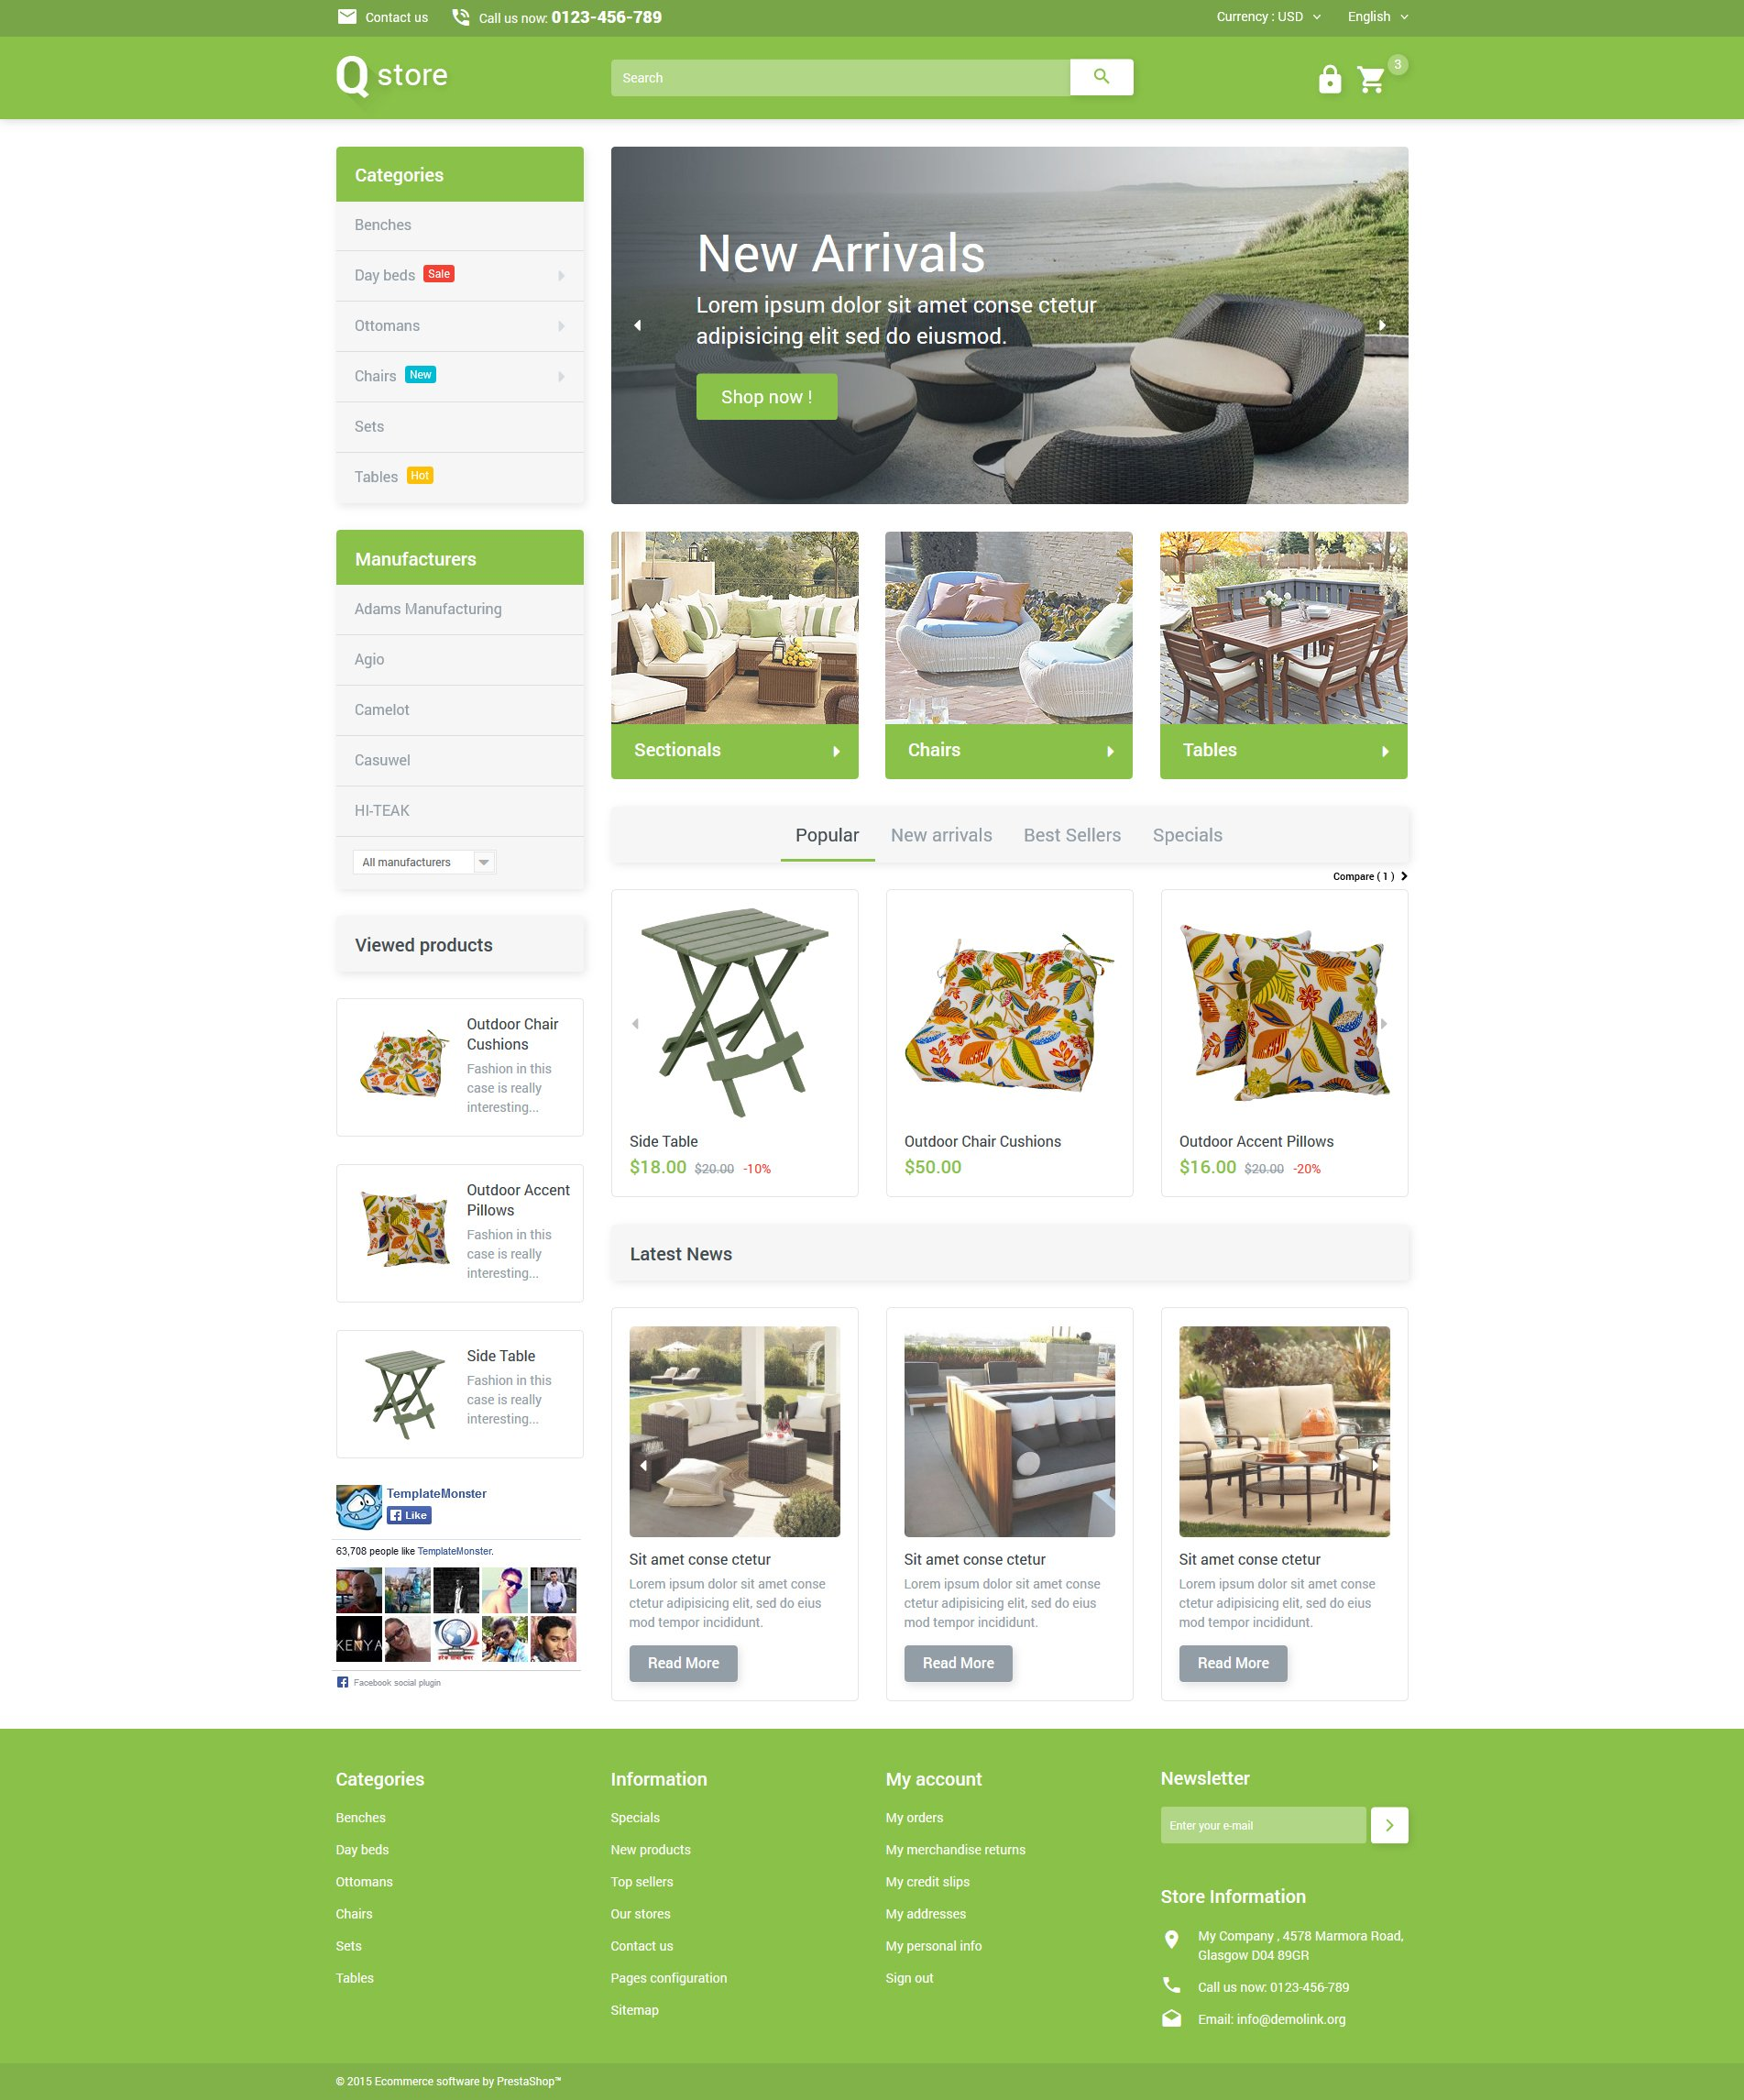 The Qstore Furniture Company Design PrestaShop Design 53694, one of the best PrestaShop themes of its kind (interior & furniture, most popular), also known as qstore furniture company design PrestaShop template, home solution PrestaShop template, interior PrestaShop template, profile designer PrestaShop template, portfolio PrestaShop template, non-standard PrestaShop template, creative idea PrestaShop template, mirror PrestaShop template, clock PrestaShop template, cutlery PrestaShop template, lighting PrestaShop template, ceiling PrestaShop template, bathroom PrestaShop template, kitchen PrestaShop template, live PrestaShop template, table PrestaShop template, chair PrestaShop template, armchair PrestaShop template, sofa PrestaShop template, order PrestaShop template, client PrestaShop template, support PrestaShop template, service PrestaShop template, decoration PrestaShop template, style PrestaShop template, collection PrestaShop template, catalogue and related with qstore furniture company design, home solution, interior, profile designer, portfolio, non-standard, creative idea, mirror, clock, cutlery, lighting, ceiling, bathroom, kitchen, live, table, chair, armchair, sofa, order, client, support, service, decoration, style, collection, catalogue, etc.